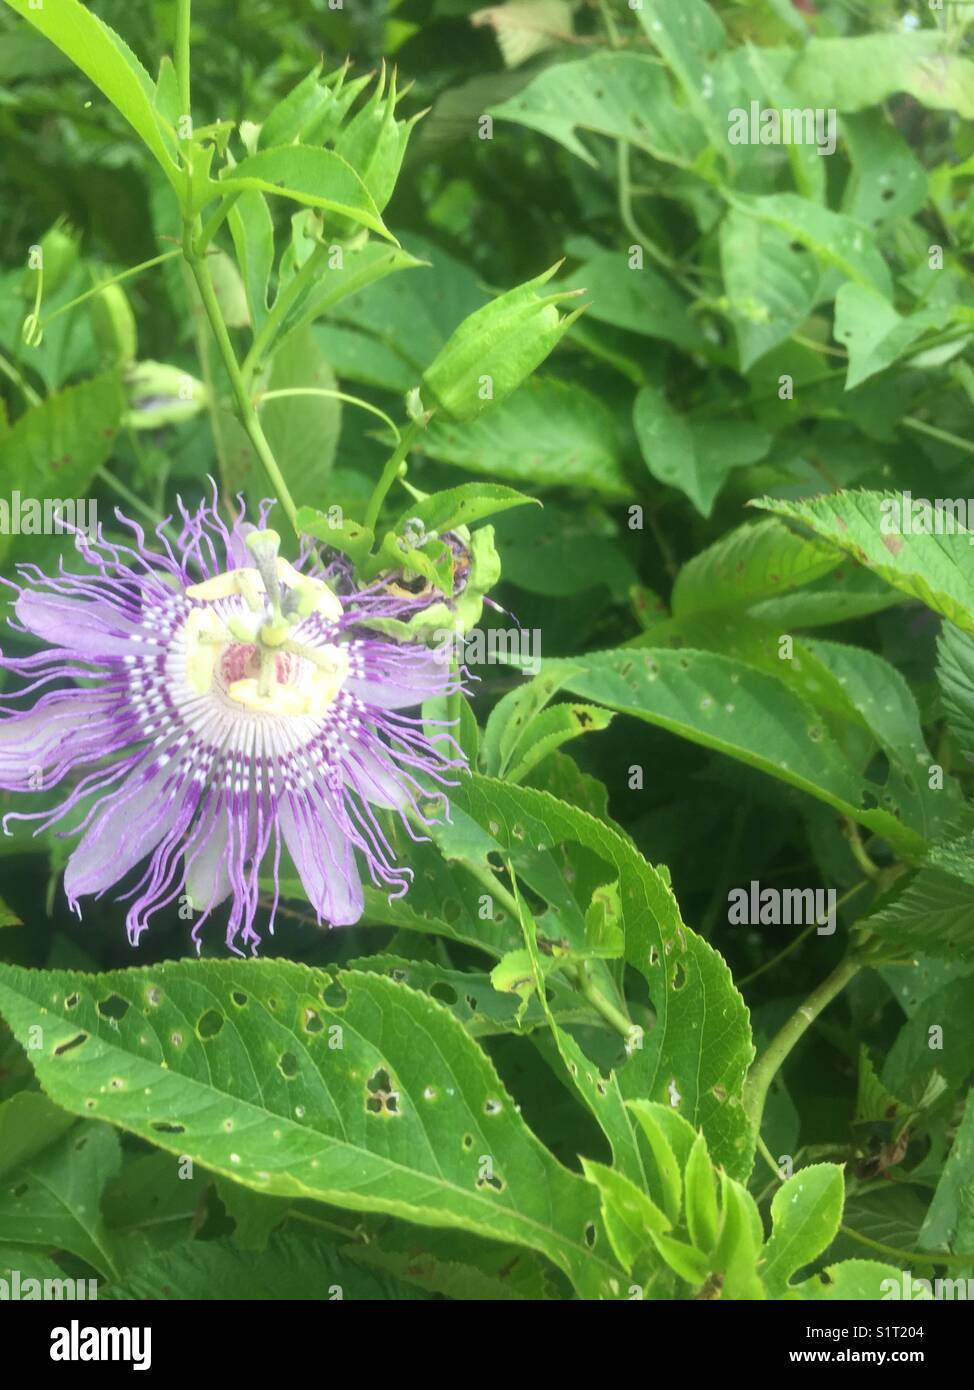 Passionflower purple passion flower growing wild stock photo passionflower purple passion flower growing wild mightylinksfo